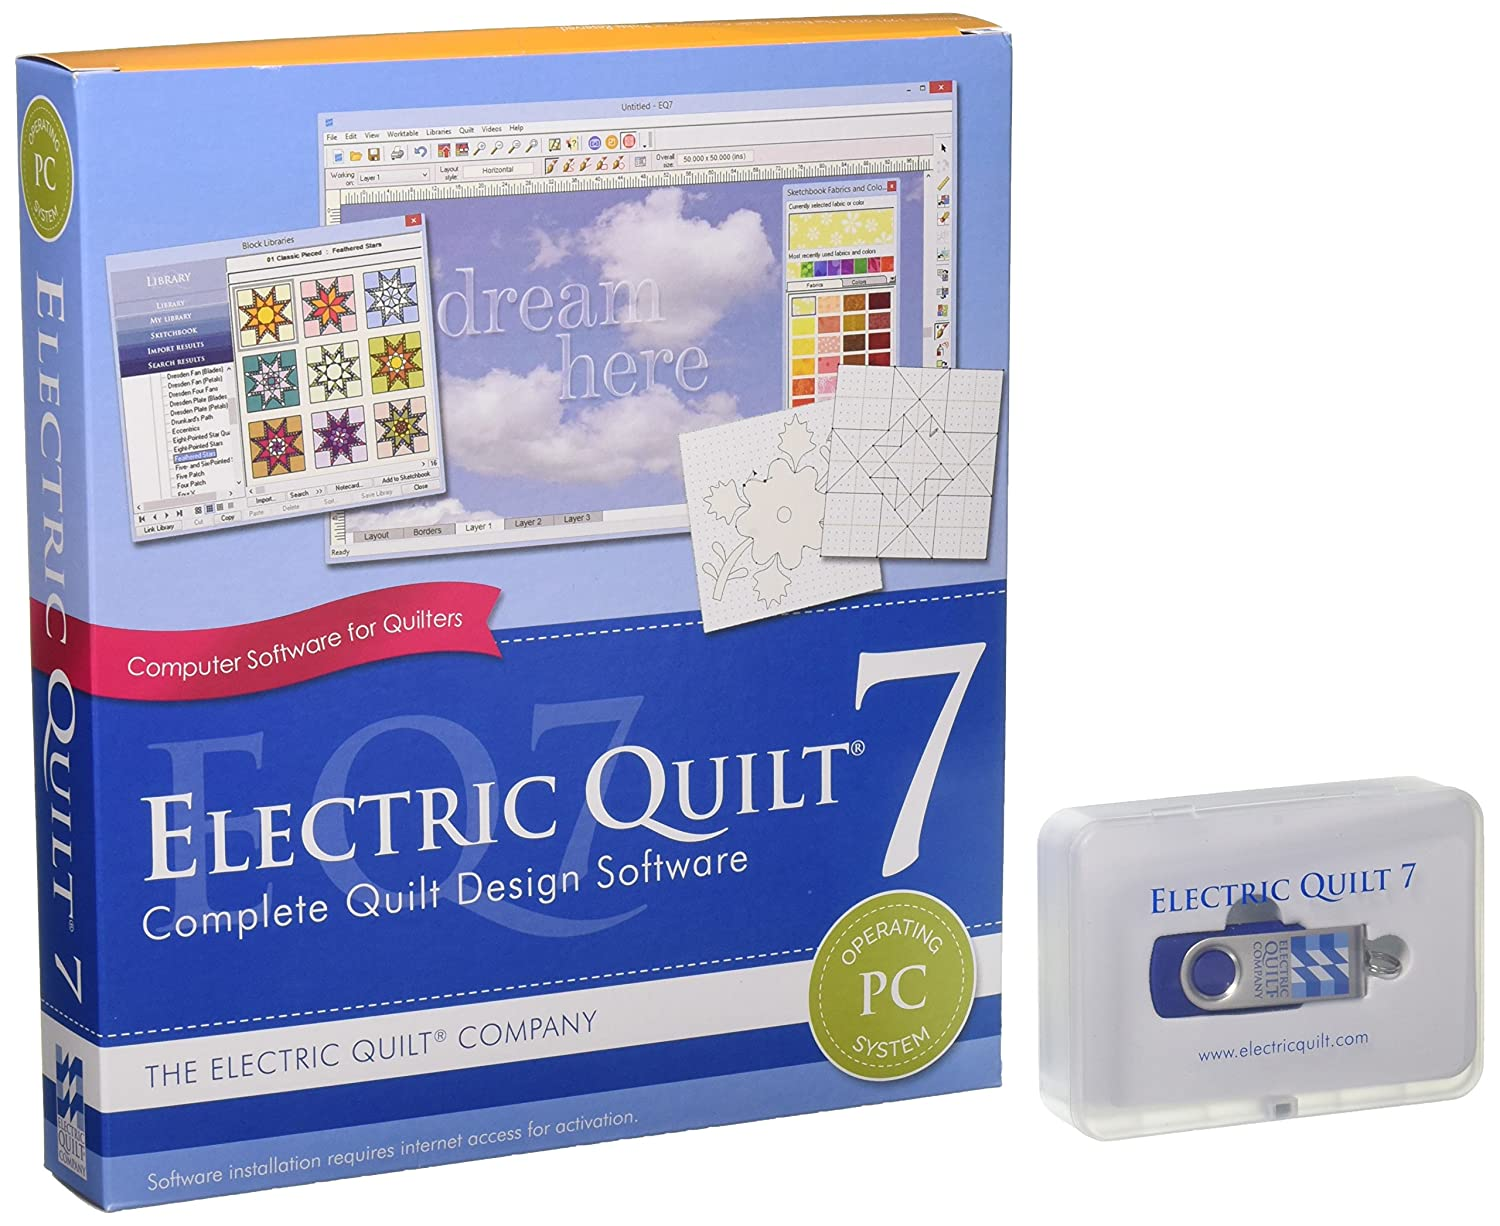 Amazon.com: Electric Quilt 7: Arts, Crafts & Sewing : quilt design tool - Adamdwight.com